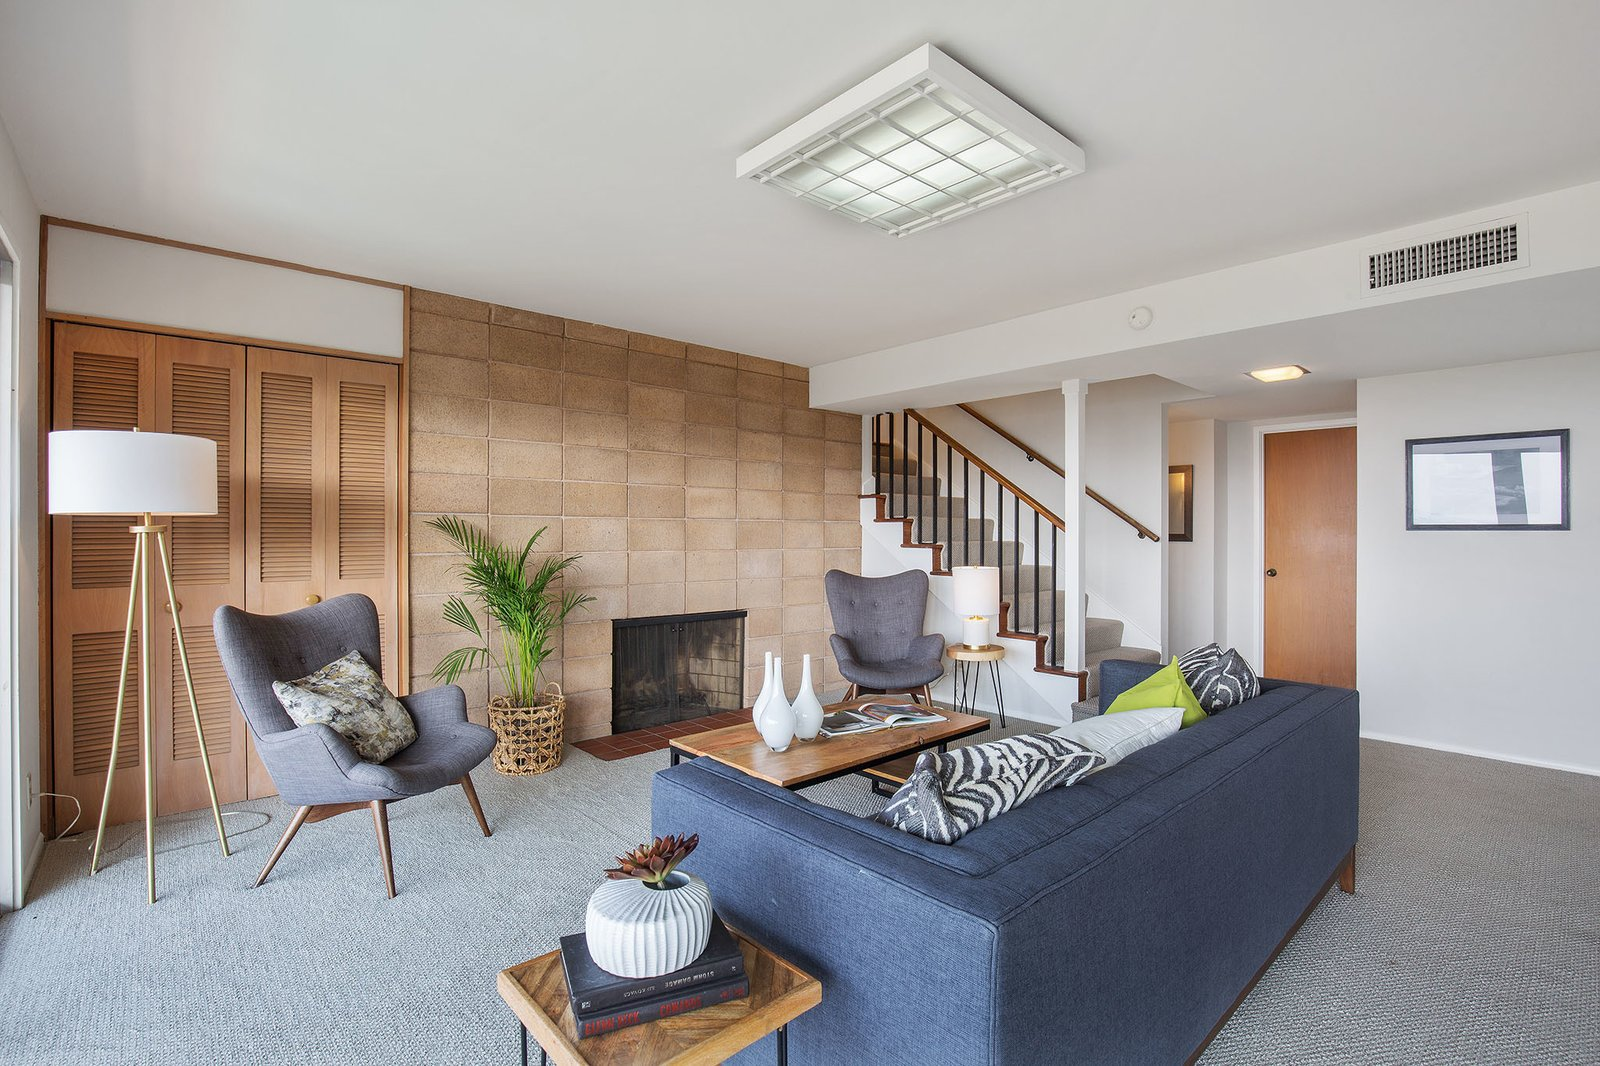 Living, Ceiling, Sofa, Chair, Standard Layout, Floor, Carpet, Coffee Tables, End Tables, and Table The residence also features a basement with an additional living room.     Best Living Standard Layout Carpet Photos from A Dreamy Midcentury in Oakland Is Seeking a New Owner For $1.4M